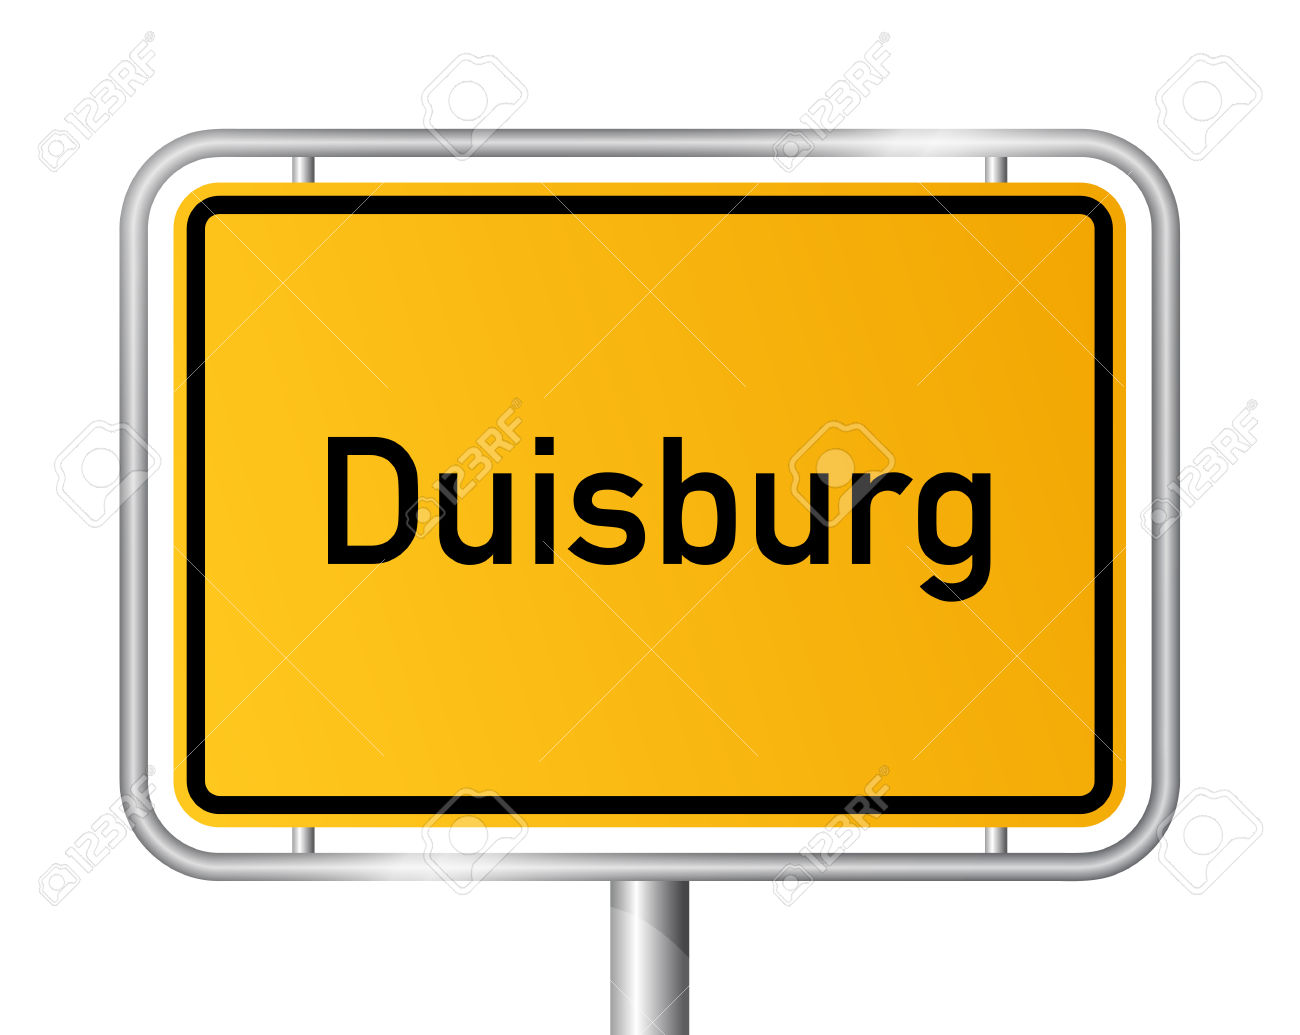 92 Duisburg Stock Illustrations, Cliparts And Royalty Free.